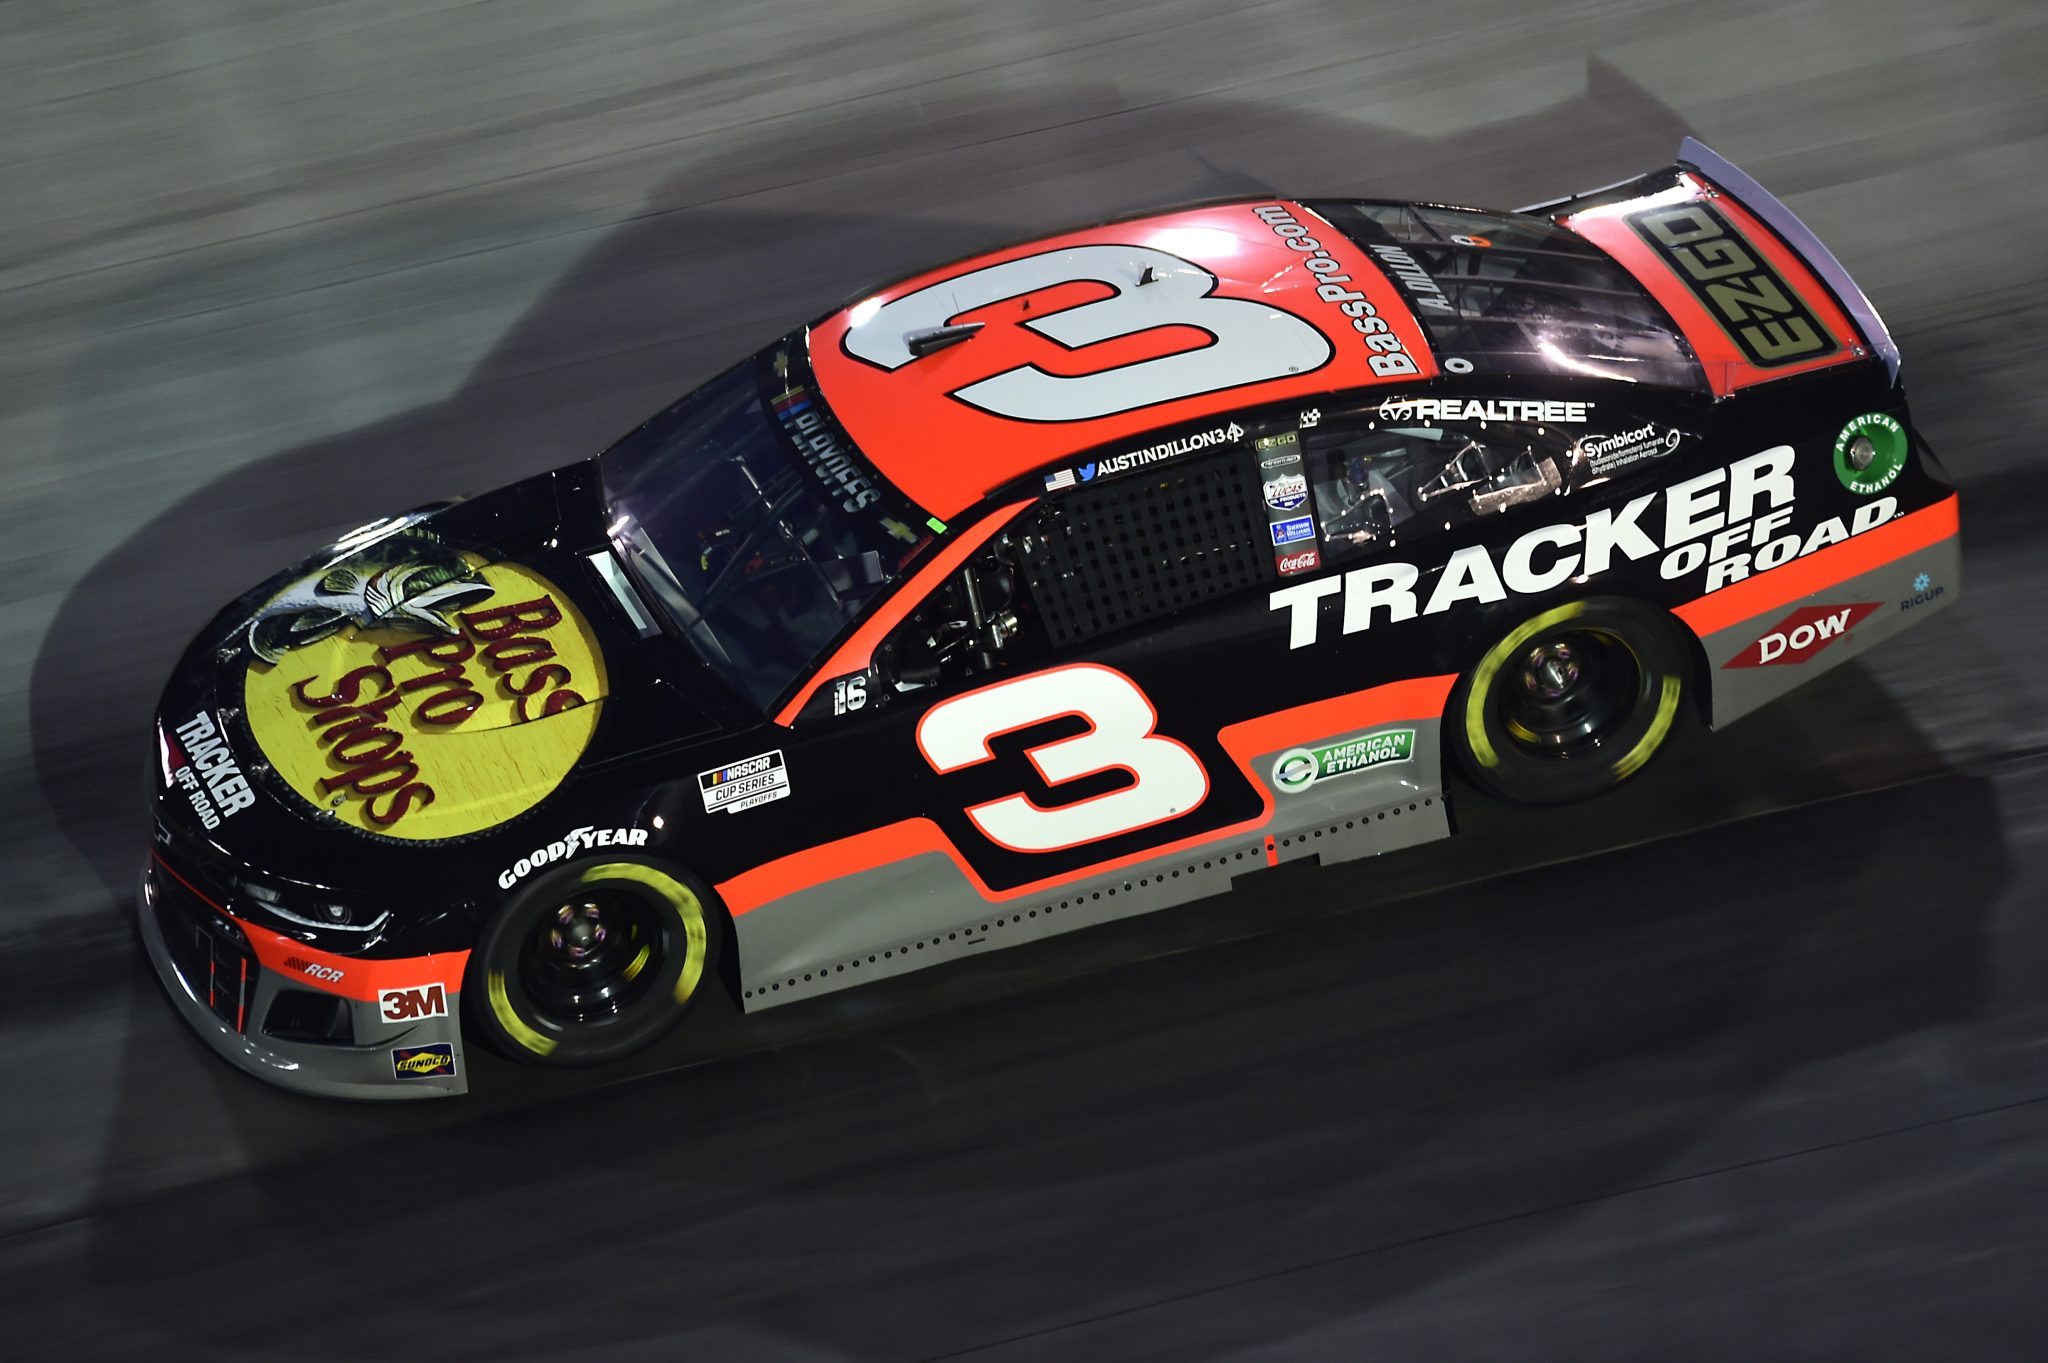 BRISTOL, TENNESSEE - SEPTEMBER 19: Austin Dillon, driver of the #3 Bass Pro Shops/Tracker Off Road Chevrolet, drives during the NASCAR Cup Series Bass Pro Shops Night Race at Bristol Motor Speedway on September 19, 2020 in Bristol, Tennessee. (Photo by Jared C. Tilton/Getty Images) | Getty Images